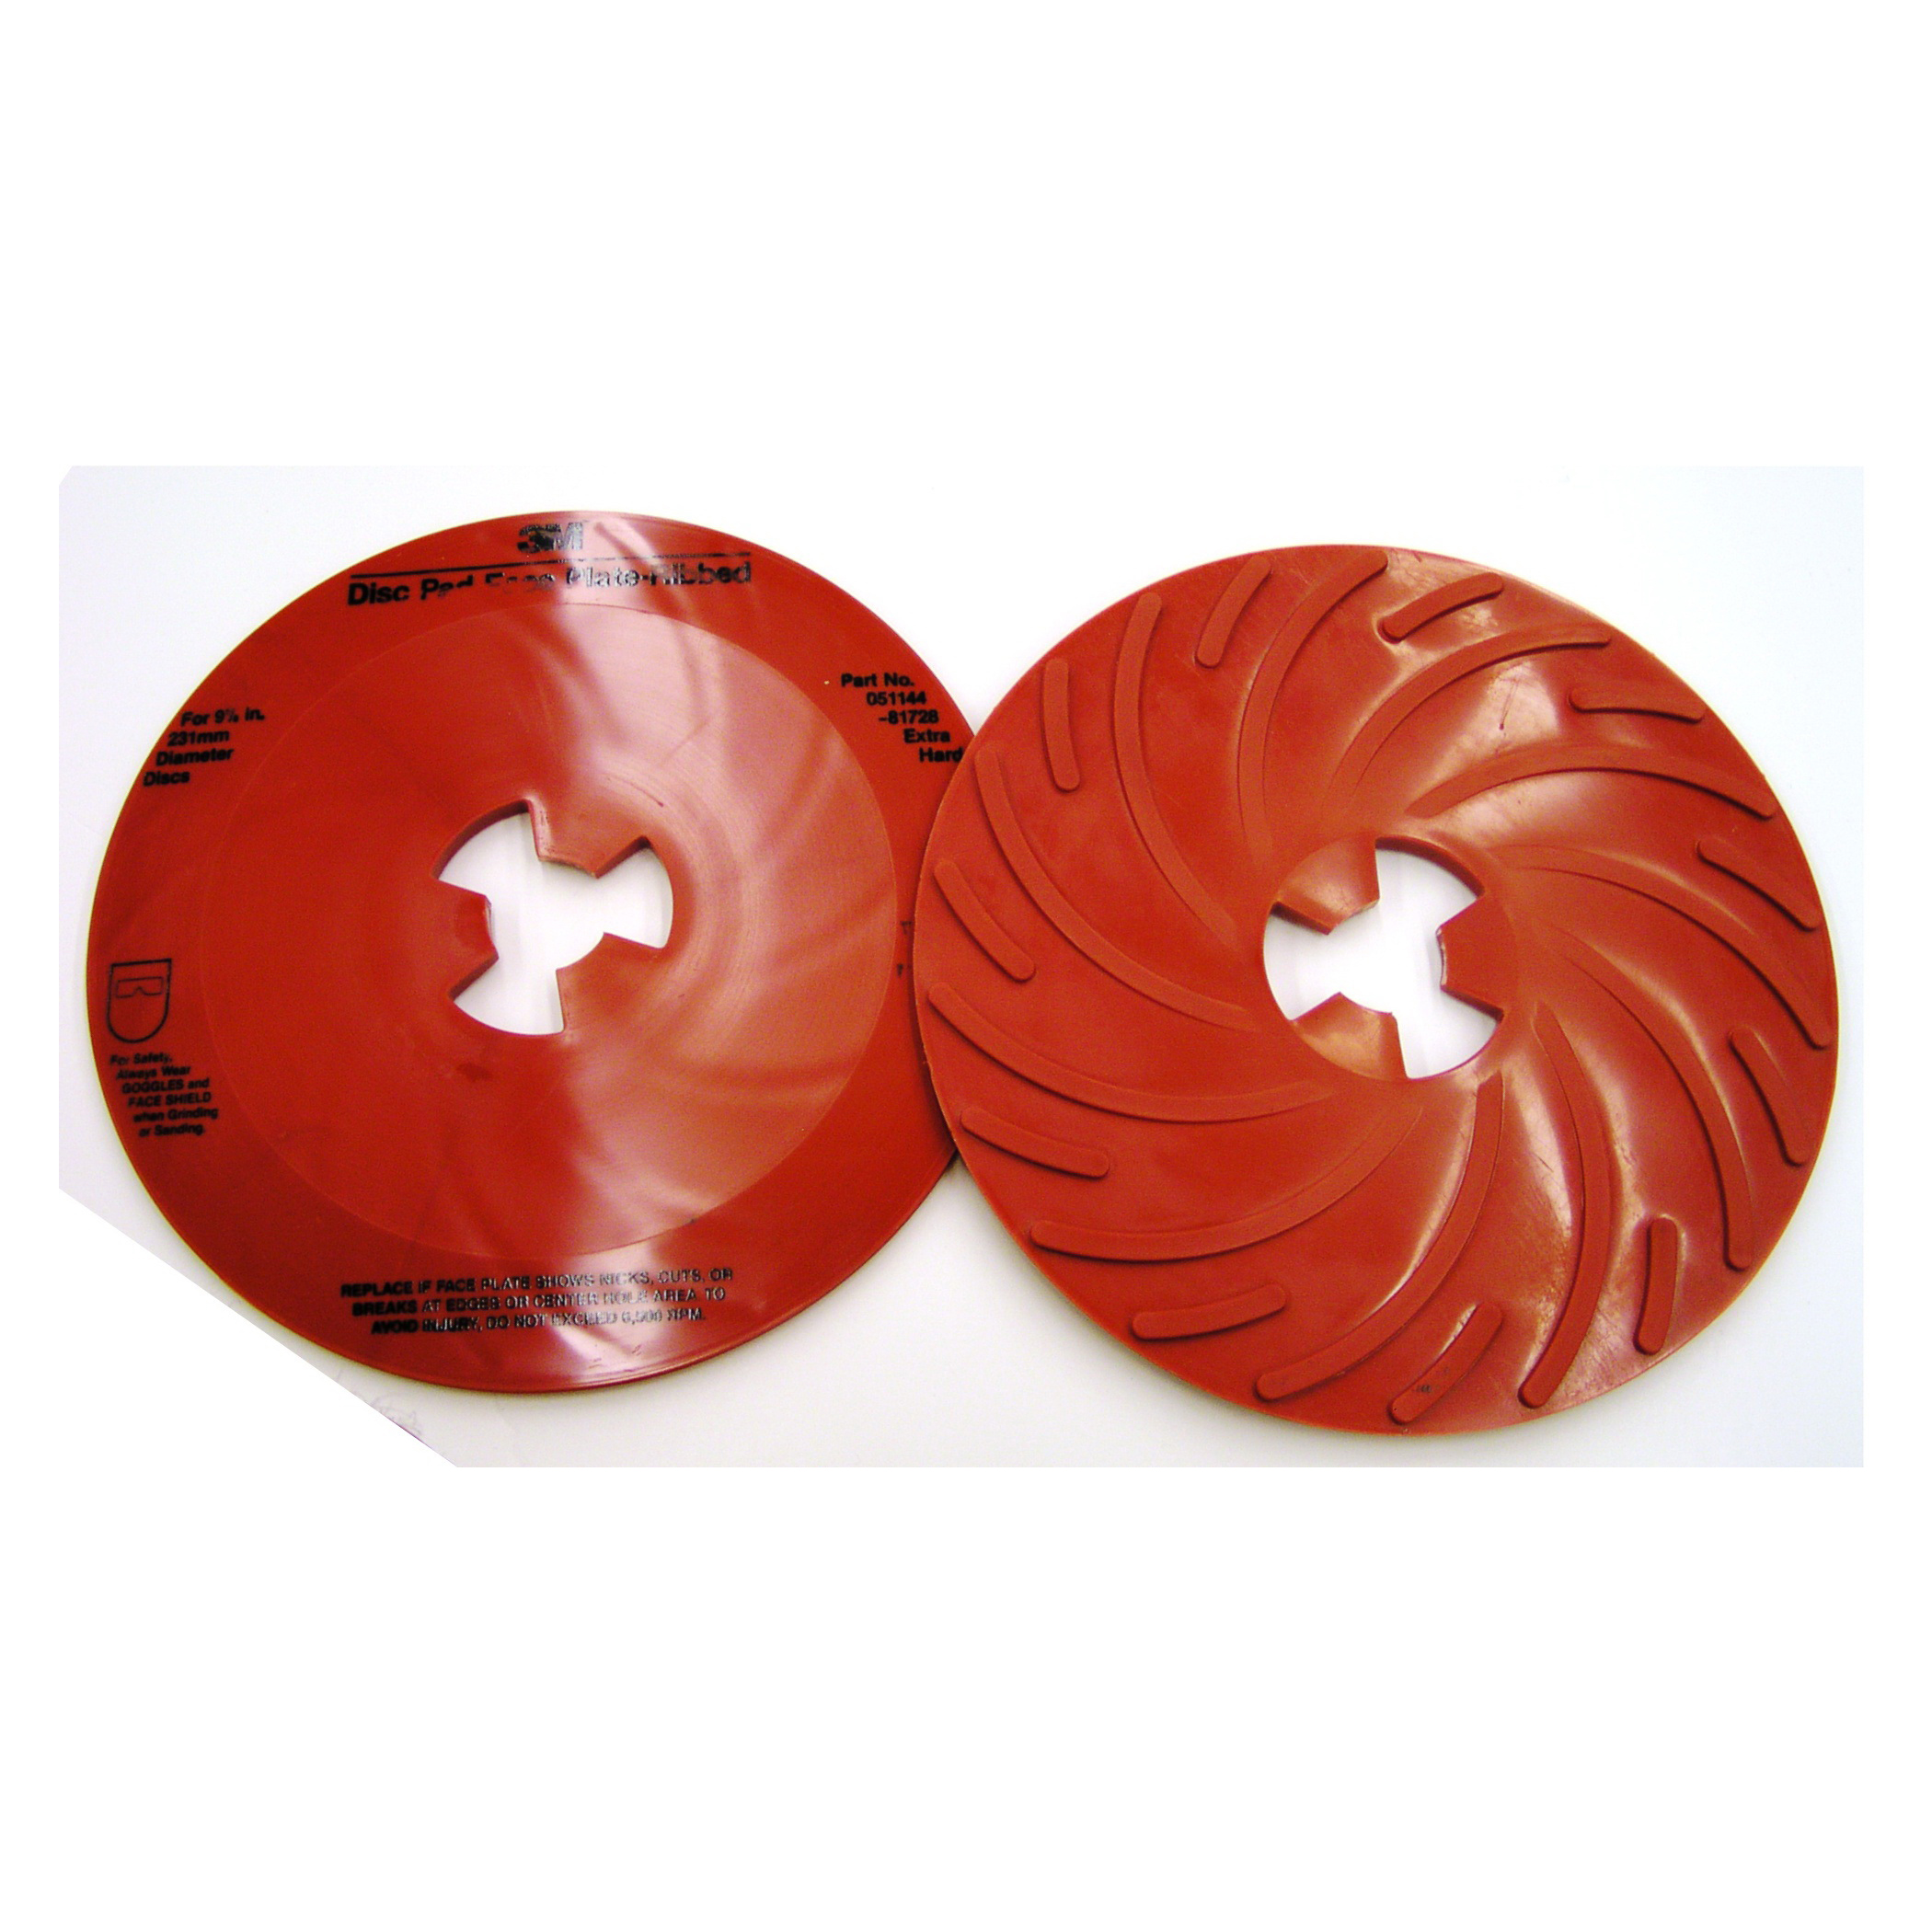 3M™ 051144-81728 Extra Hard Density Ribbed Close Coated Abrasive Disc, 9 in W/Dia, For Use With 3M™Disc Pad Hub, Right Angle Grinder and Rotary Sander